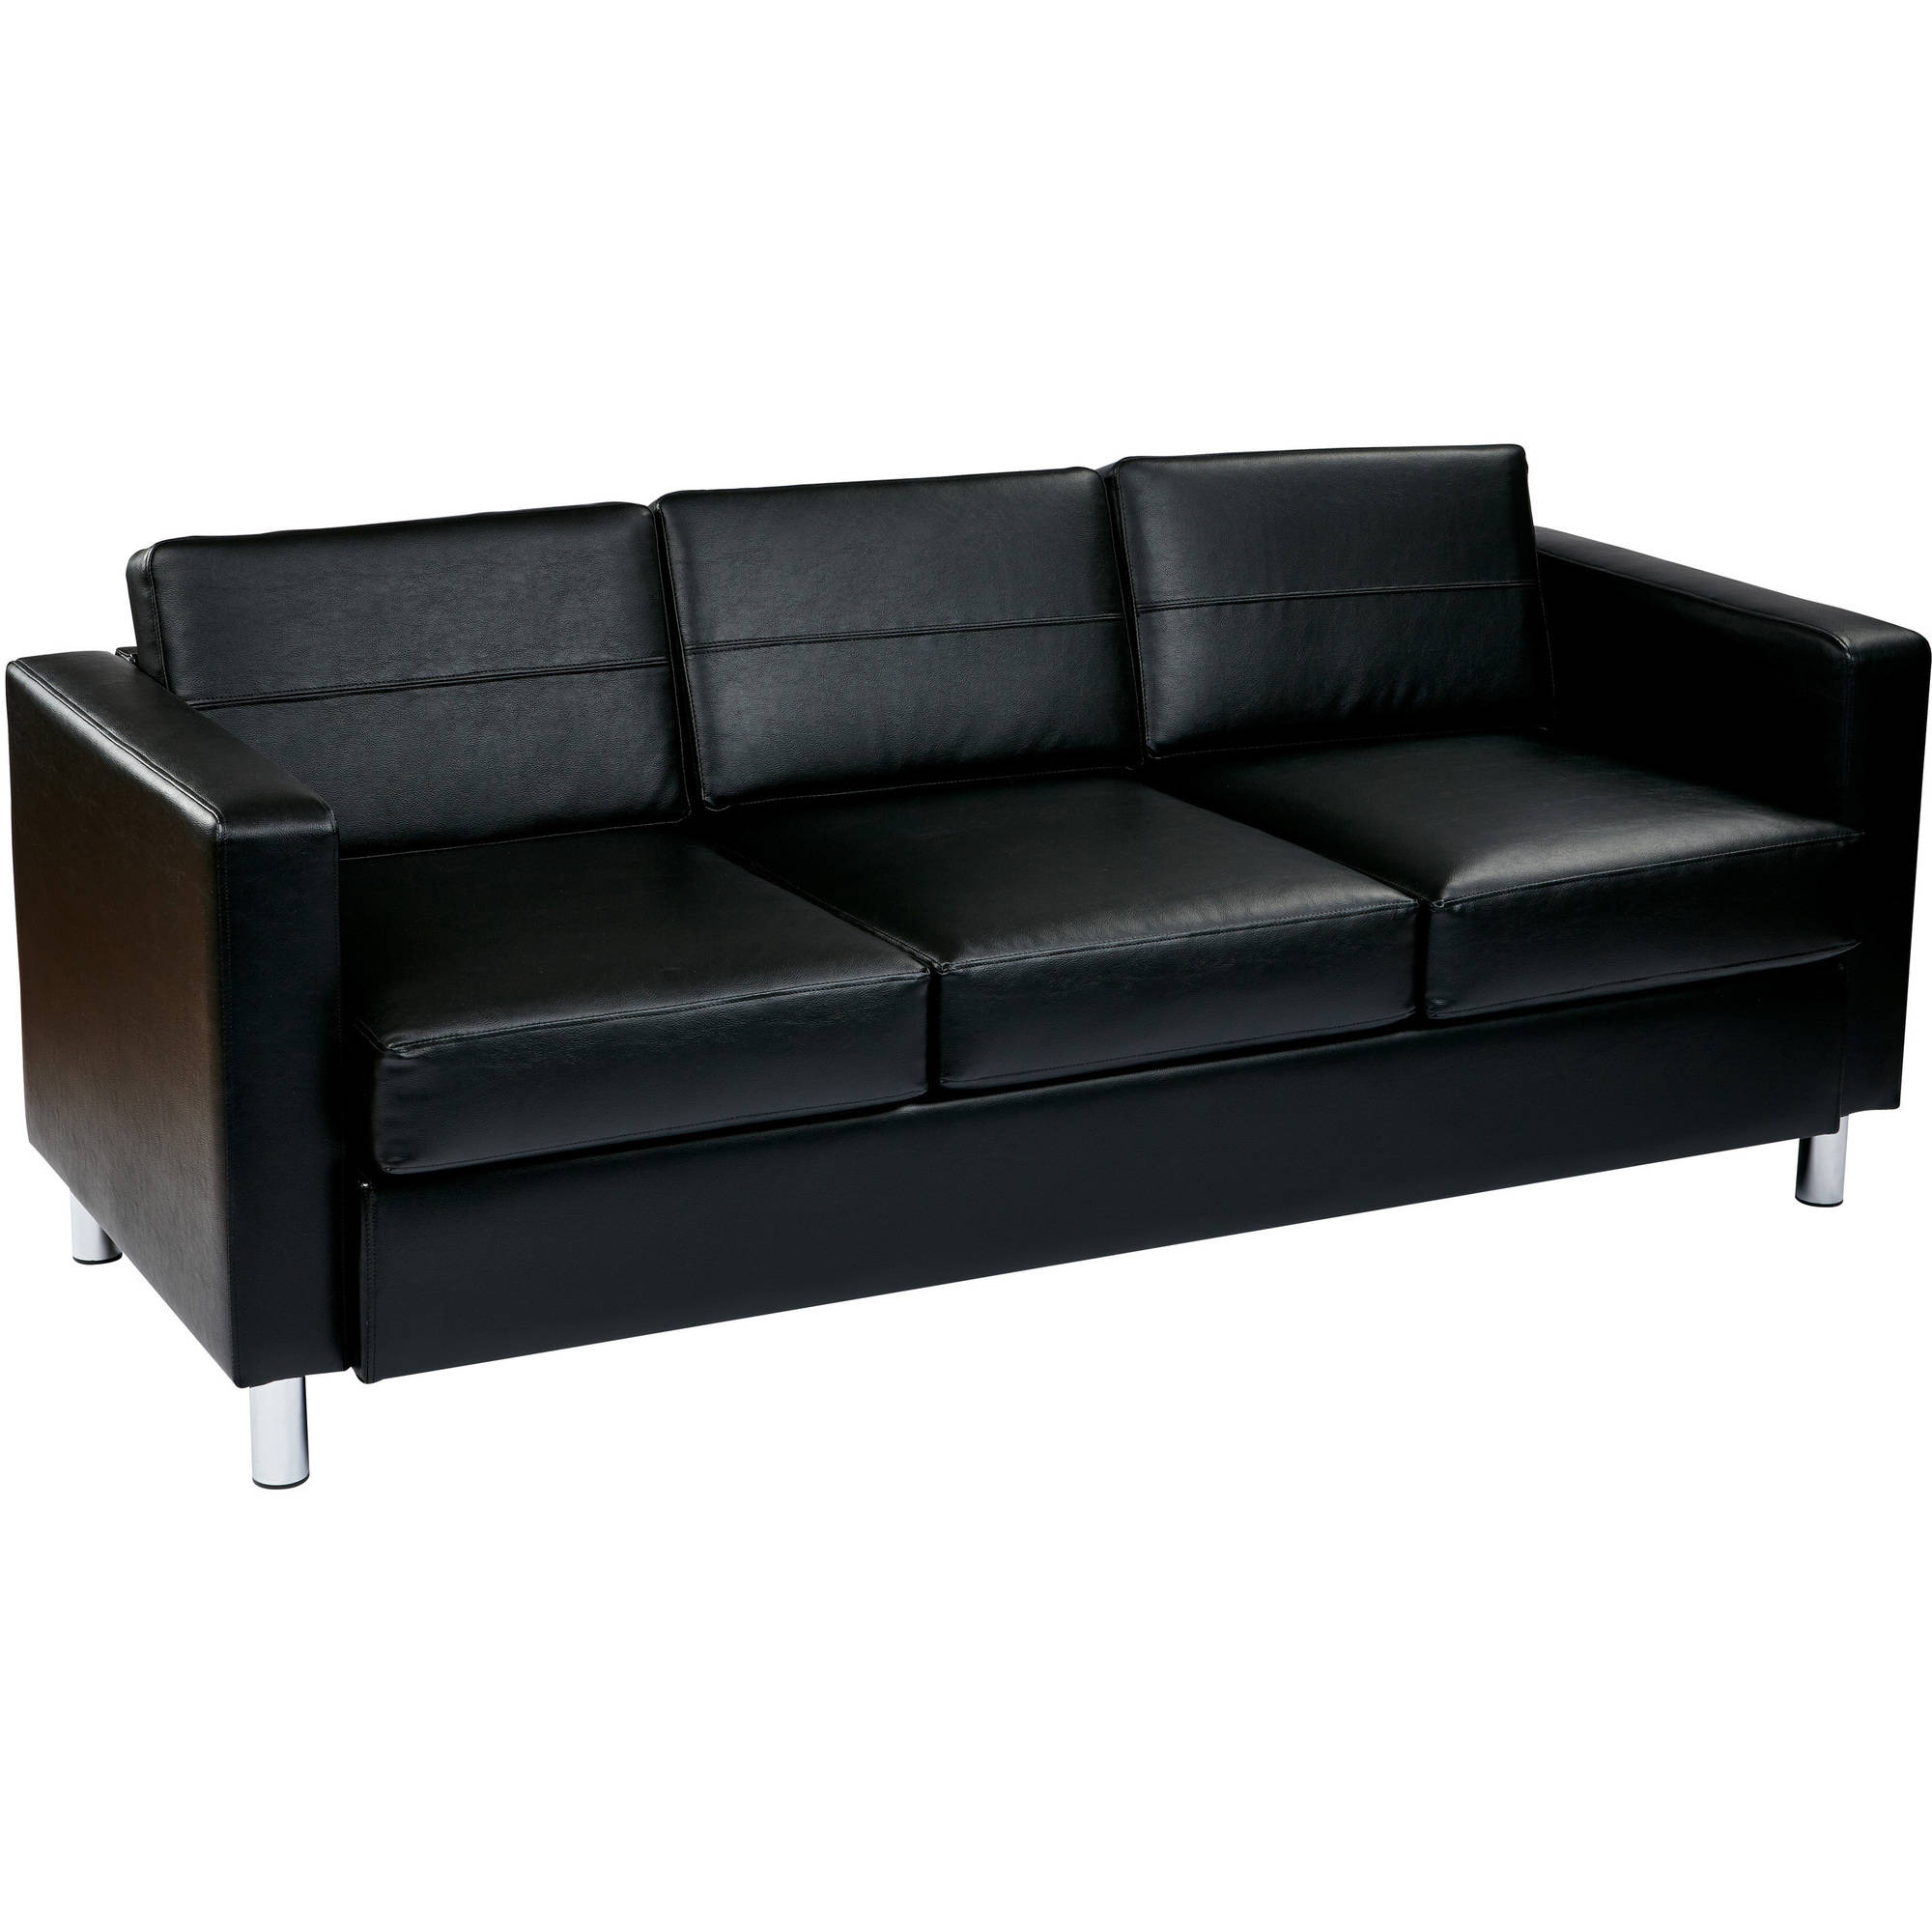 Pacific Faux Leather Sofa Couch With Box Spring Seats, Black